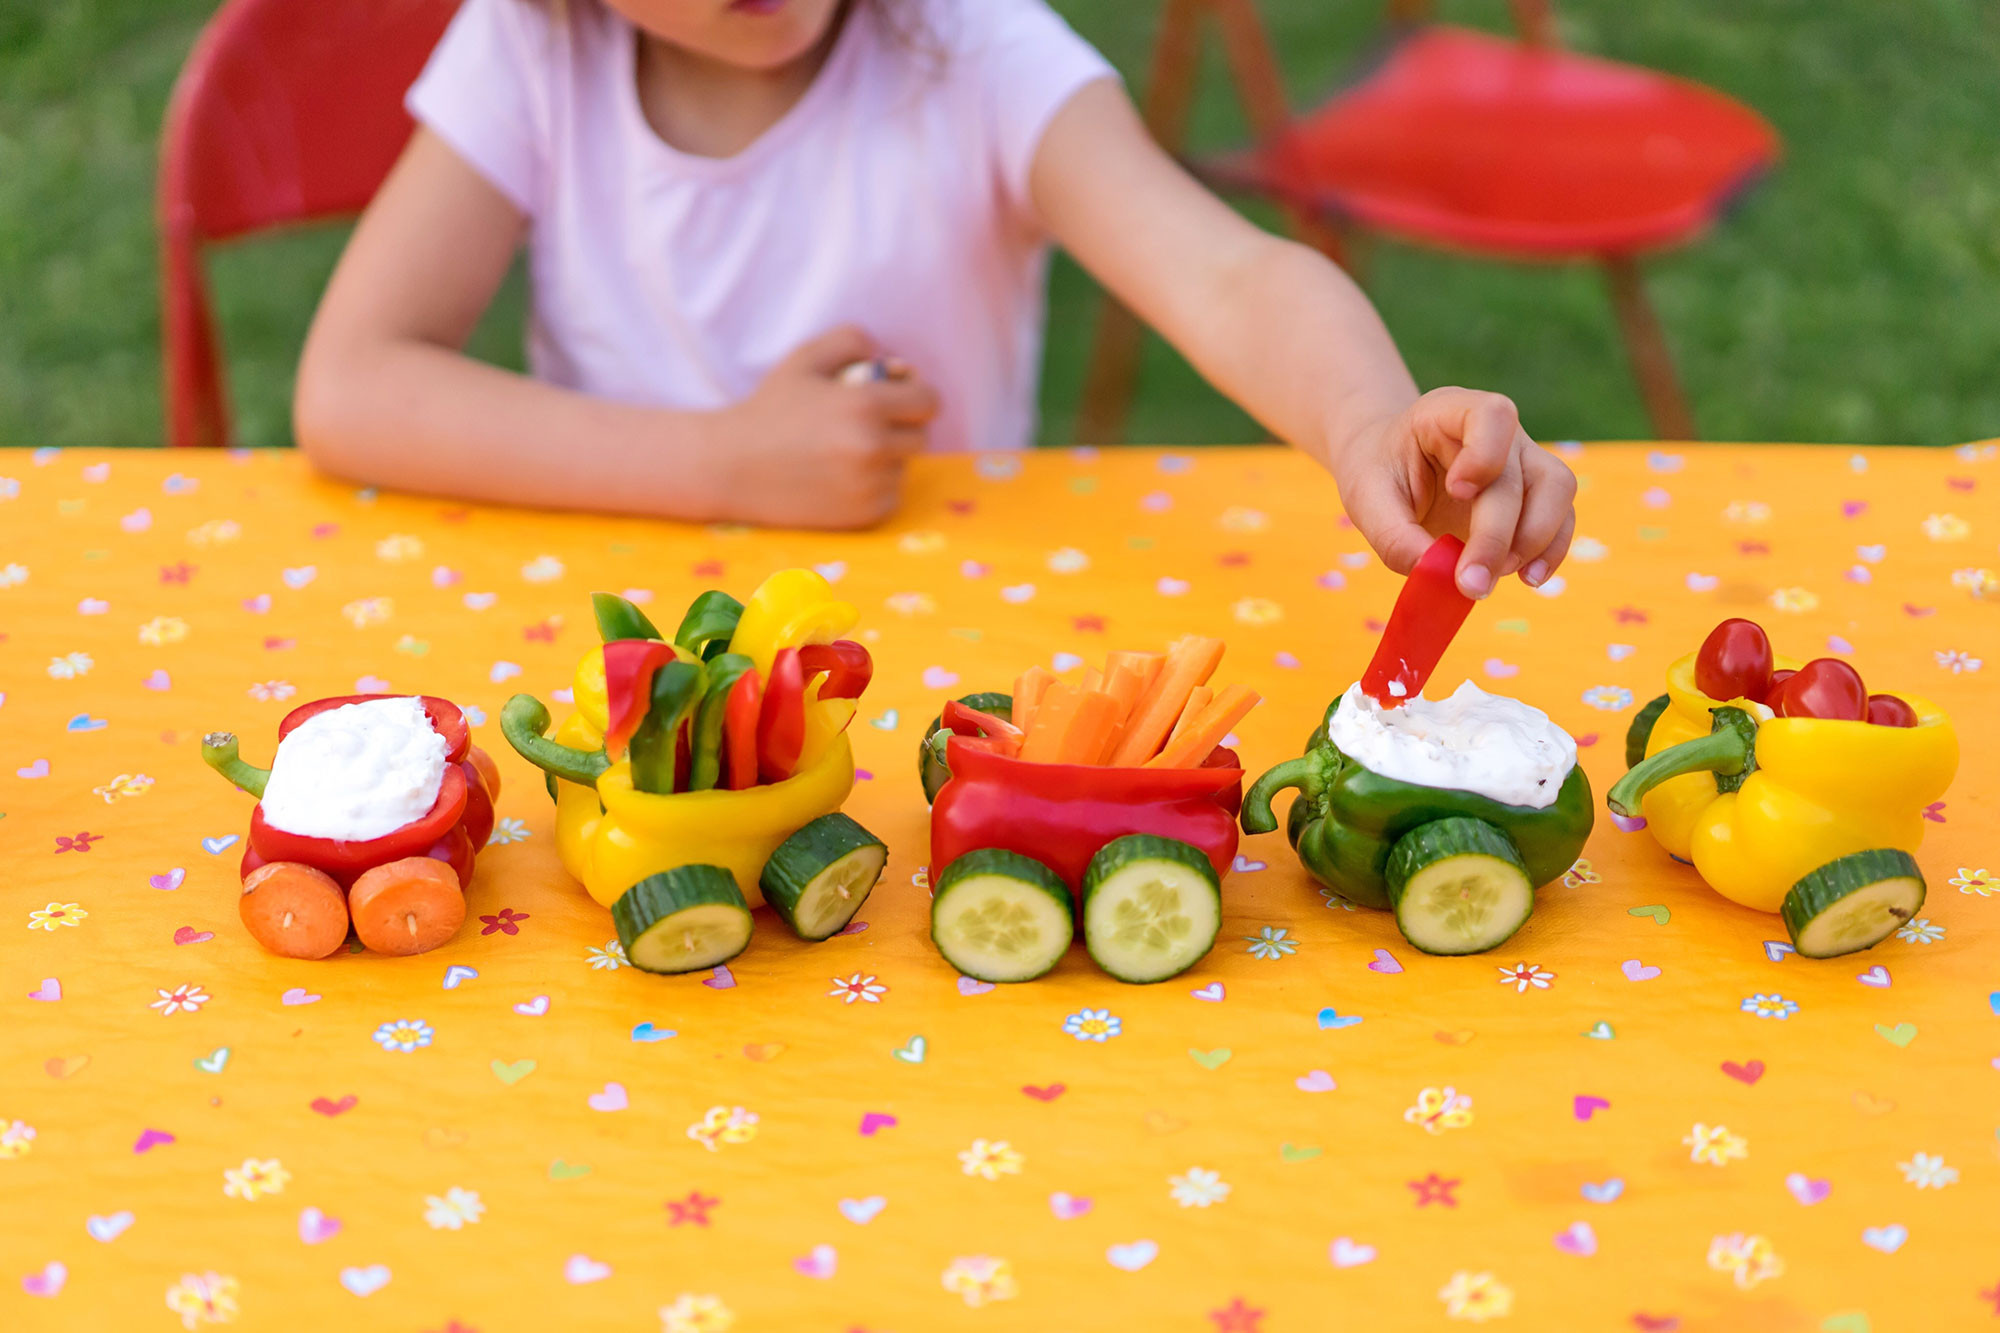 Children Birthday Party Food Ideas  Healthy Party Food Ideas for Kids That Curb the Sugar Rush